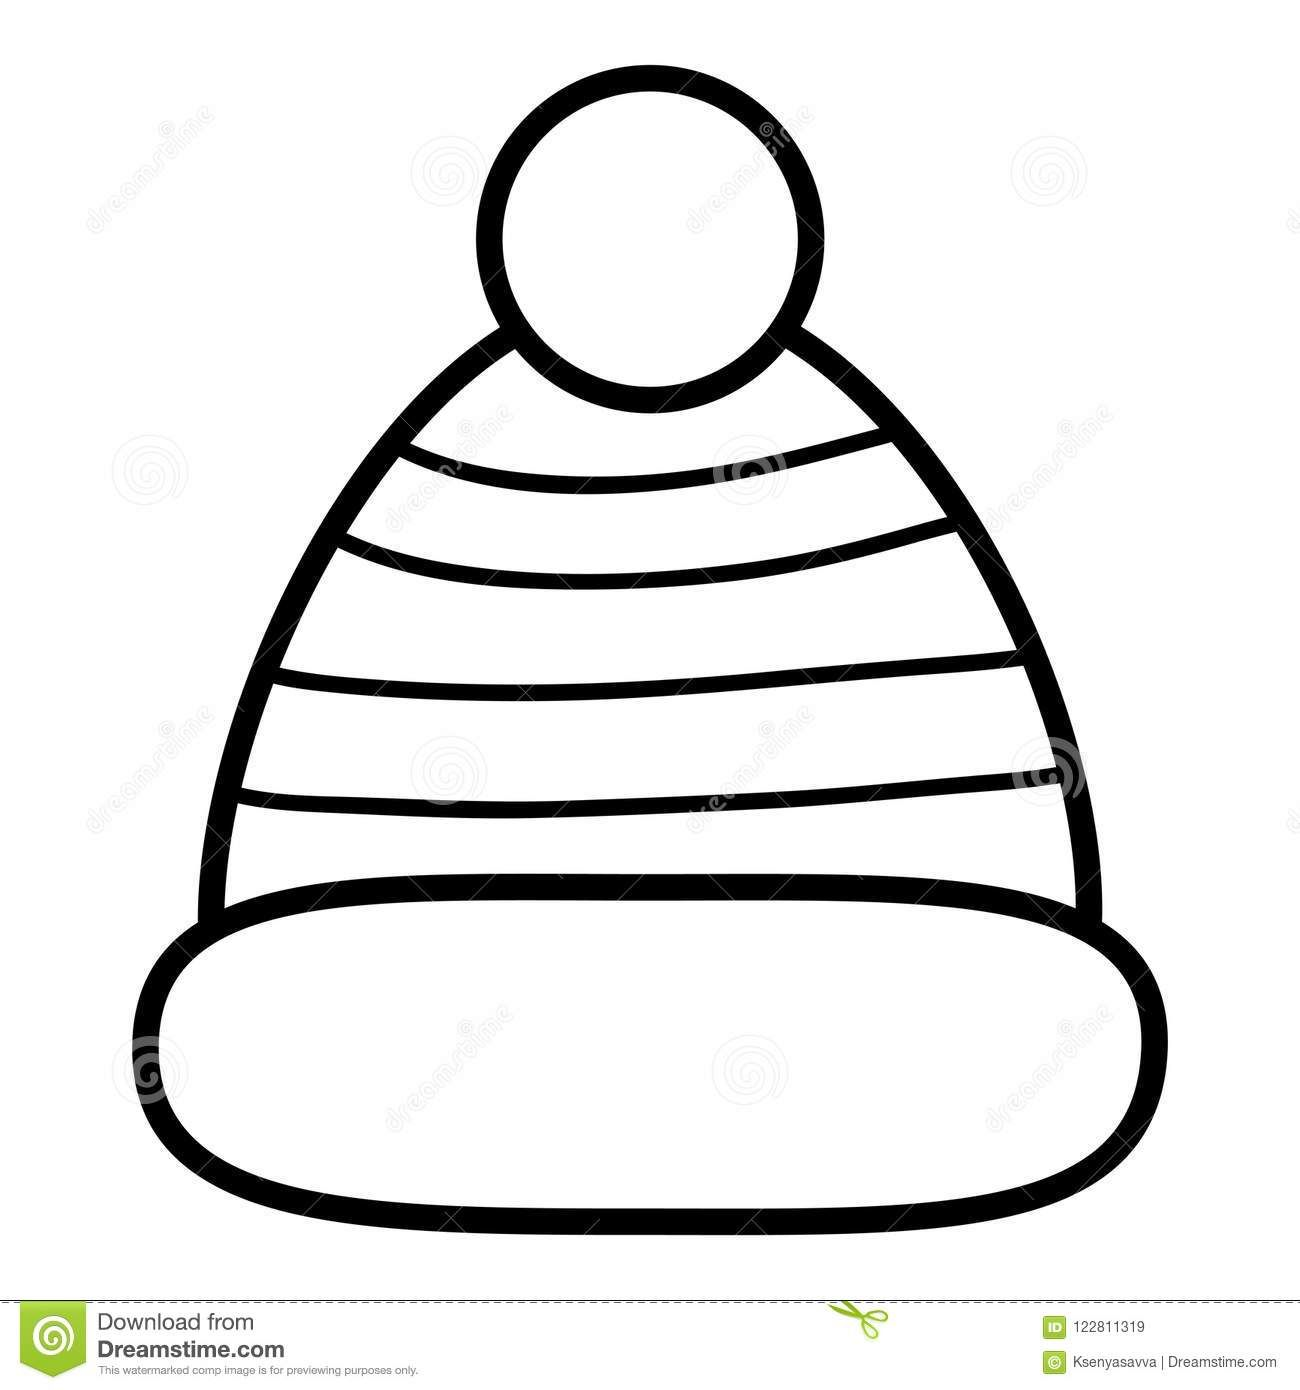 Coloring Book Hat | Coloring Pages | Coloring Books, Books